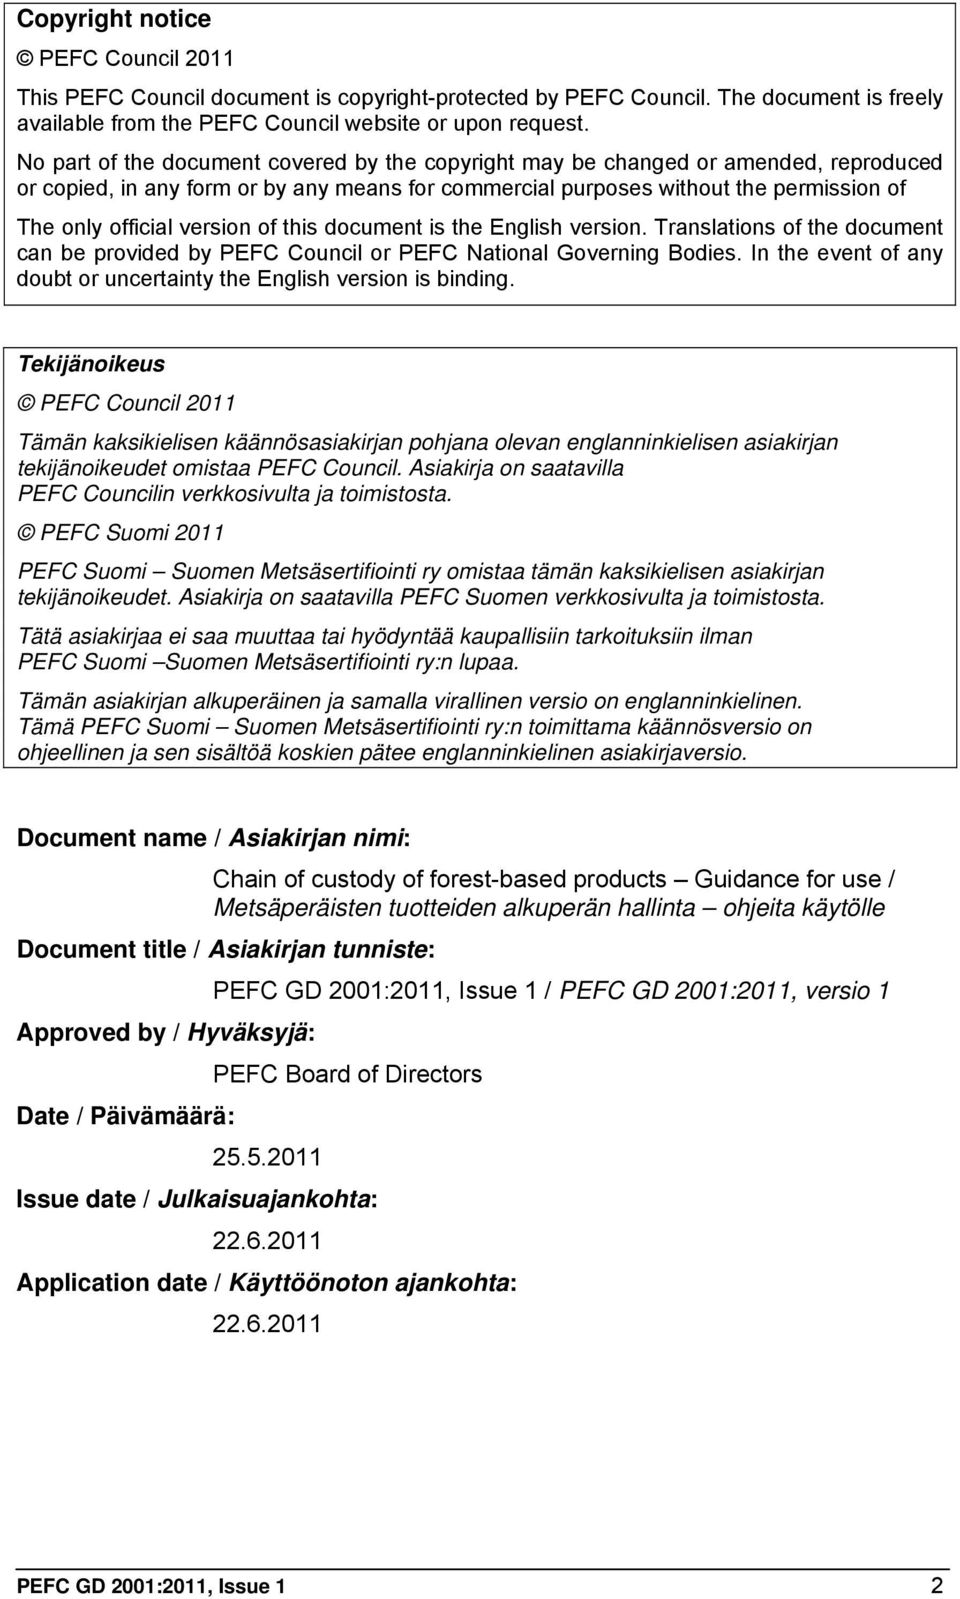 version of this document is the English version. Translations of the document can be provided by PEFC Council or PEFC National Governing Bodies.